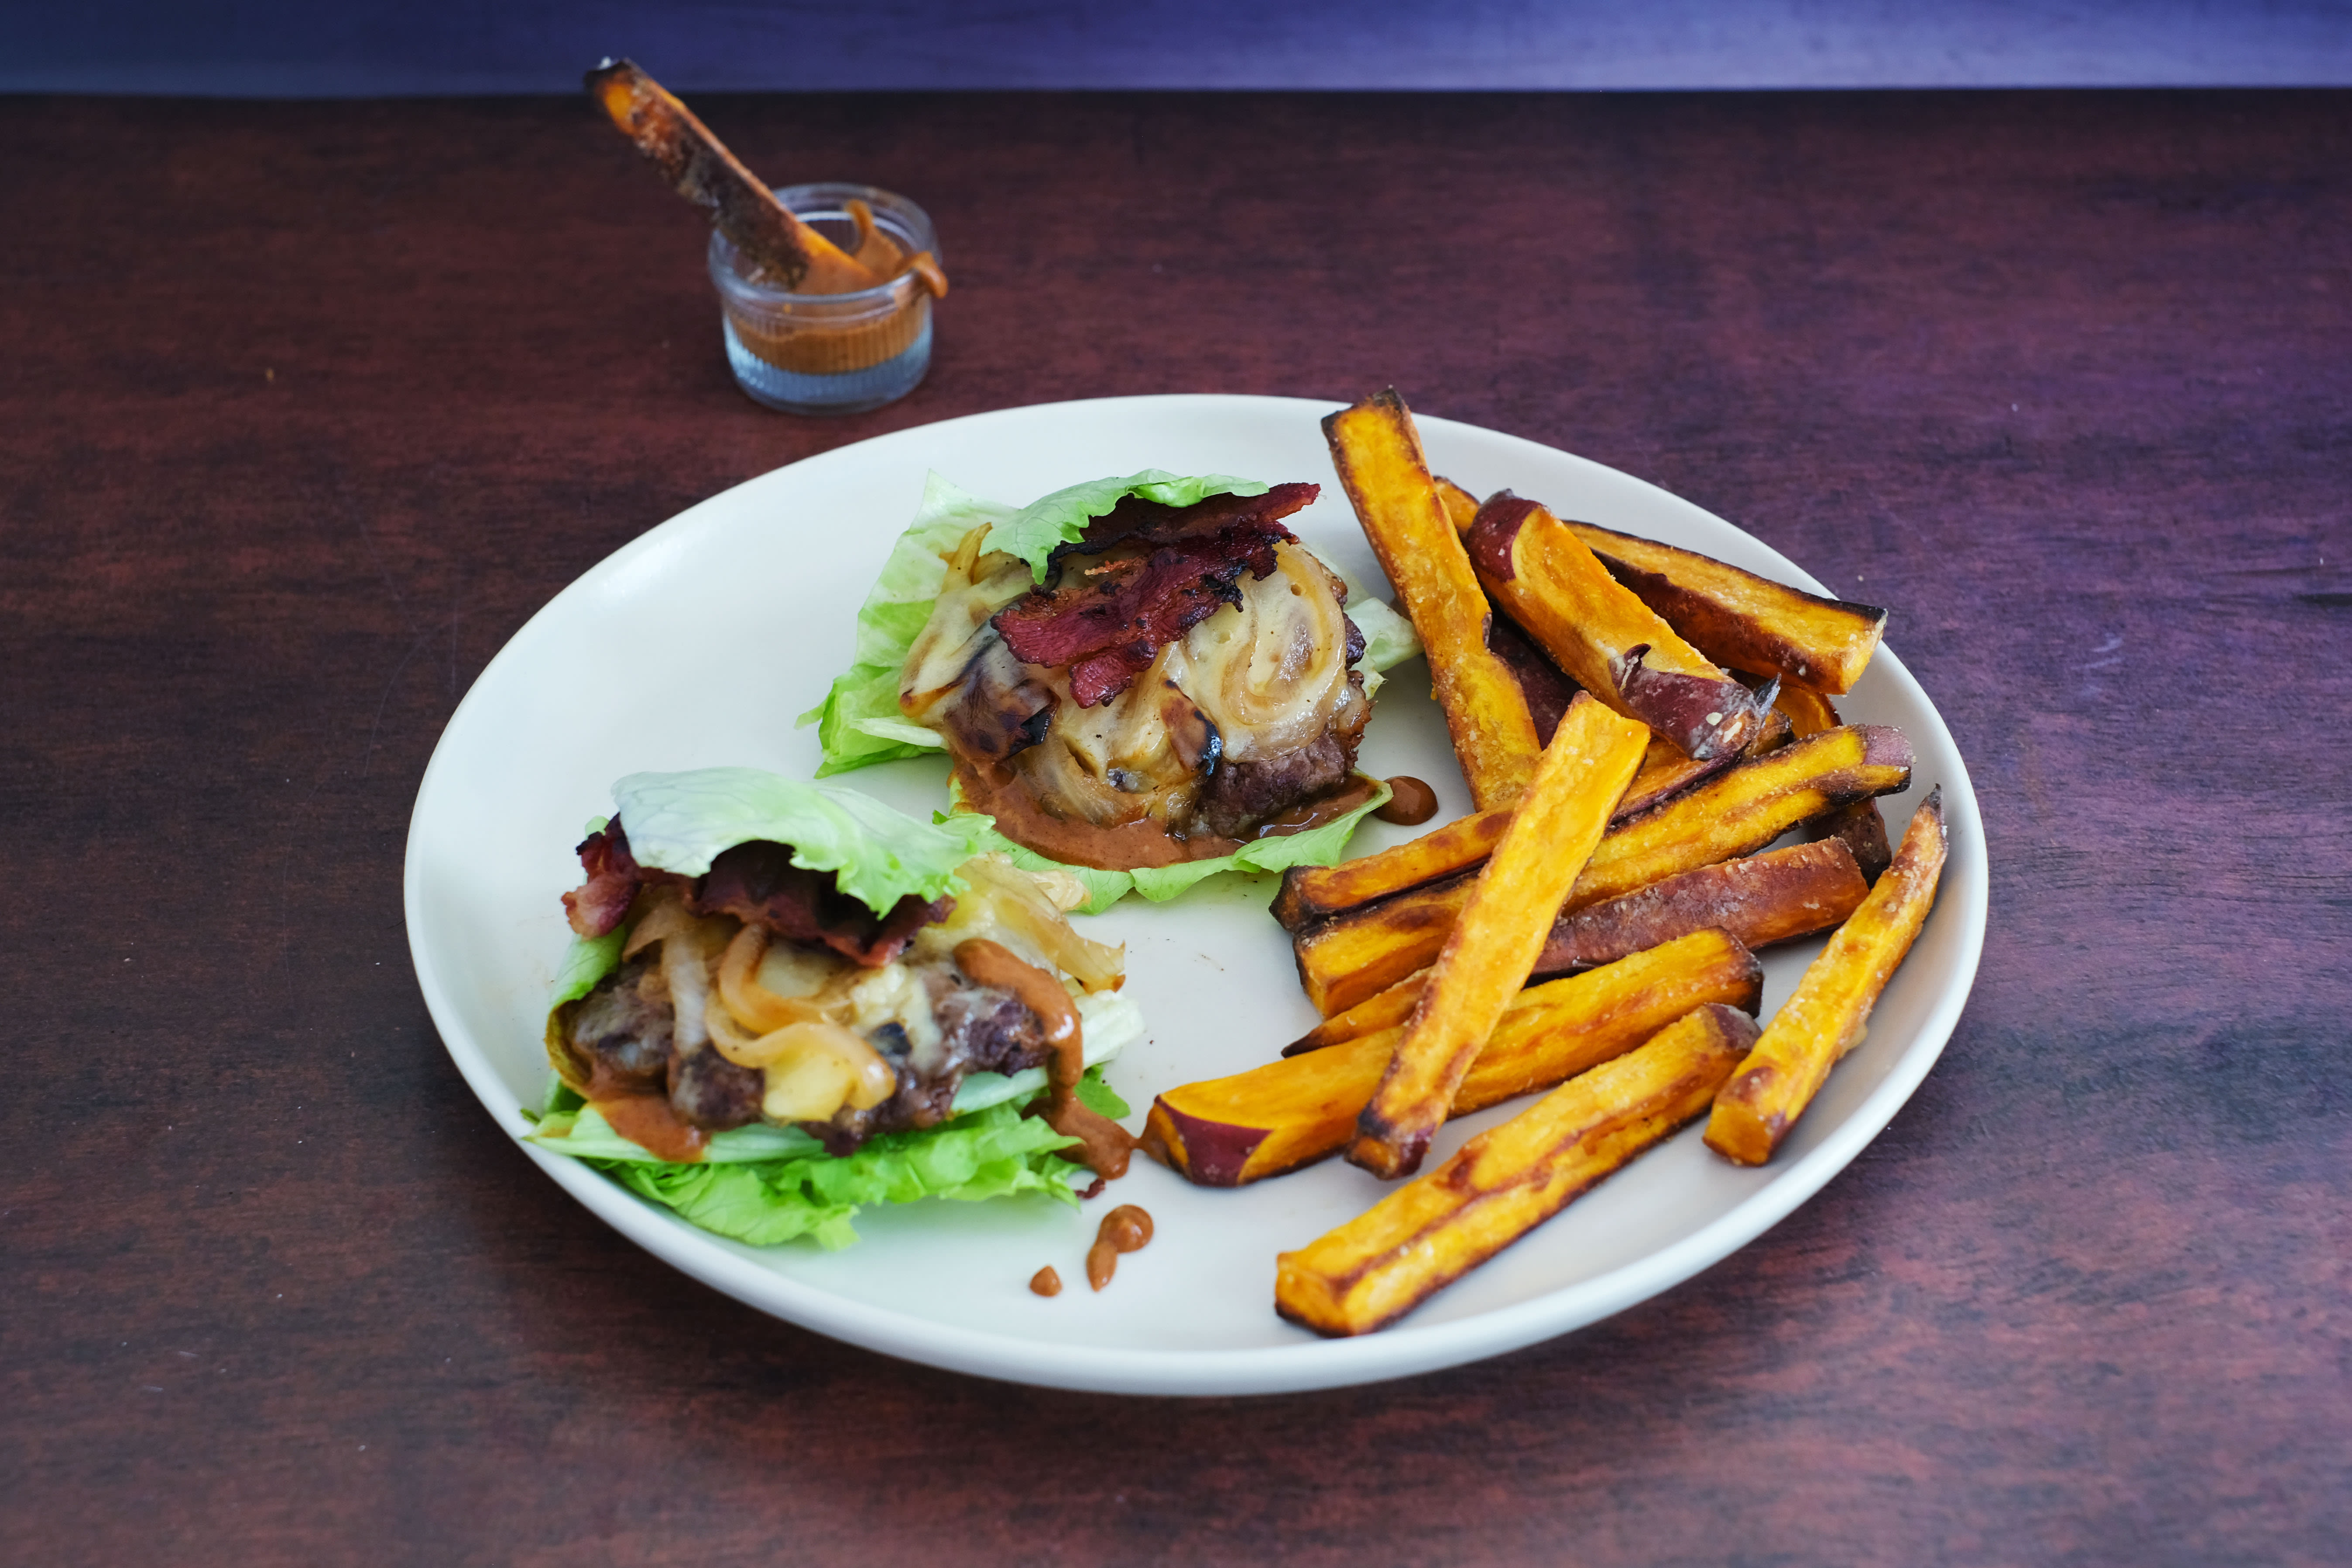 Lettuce Cheese Burger Wraps with Beef Bacon and Secret Sauce